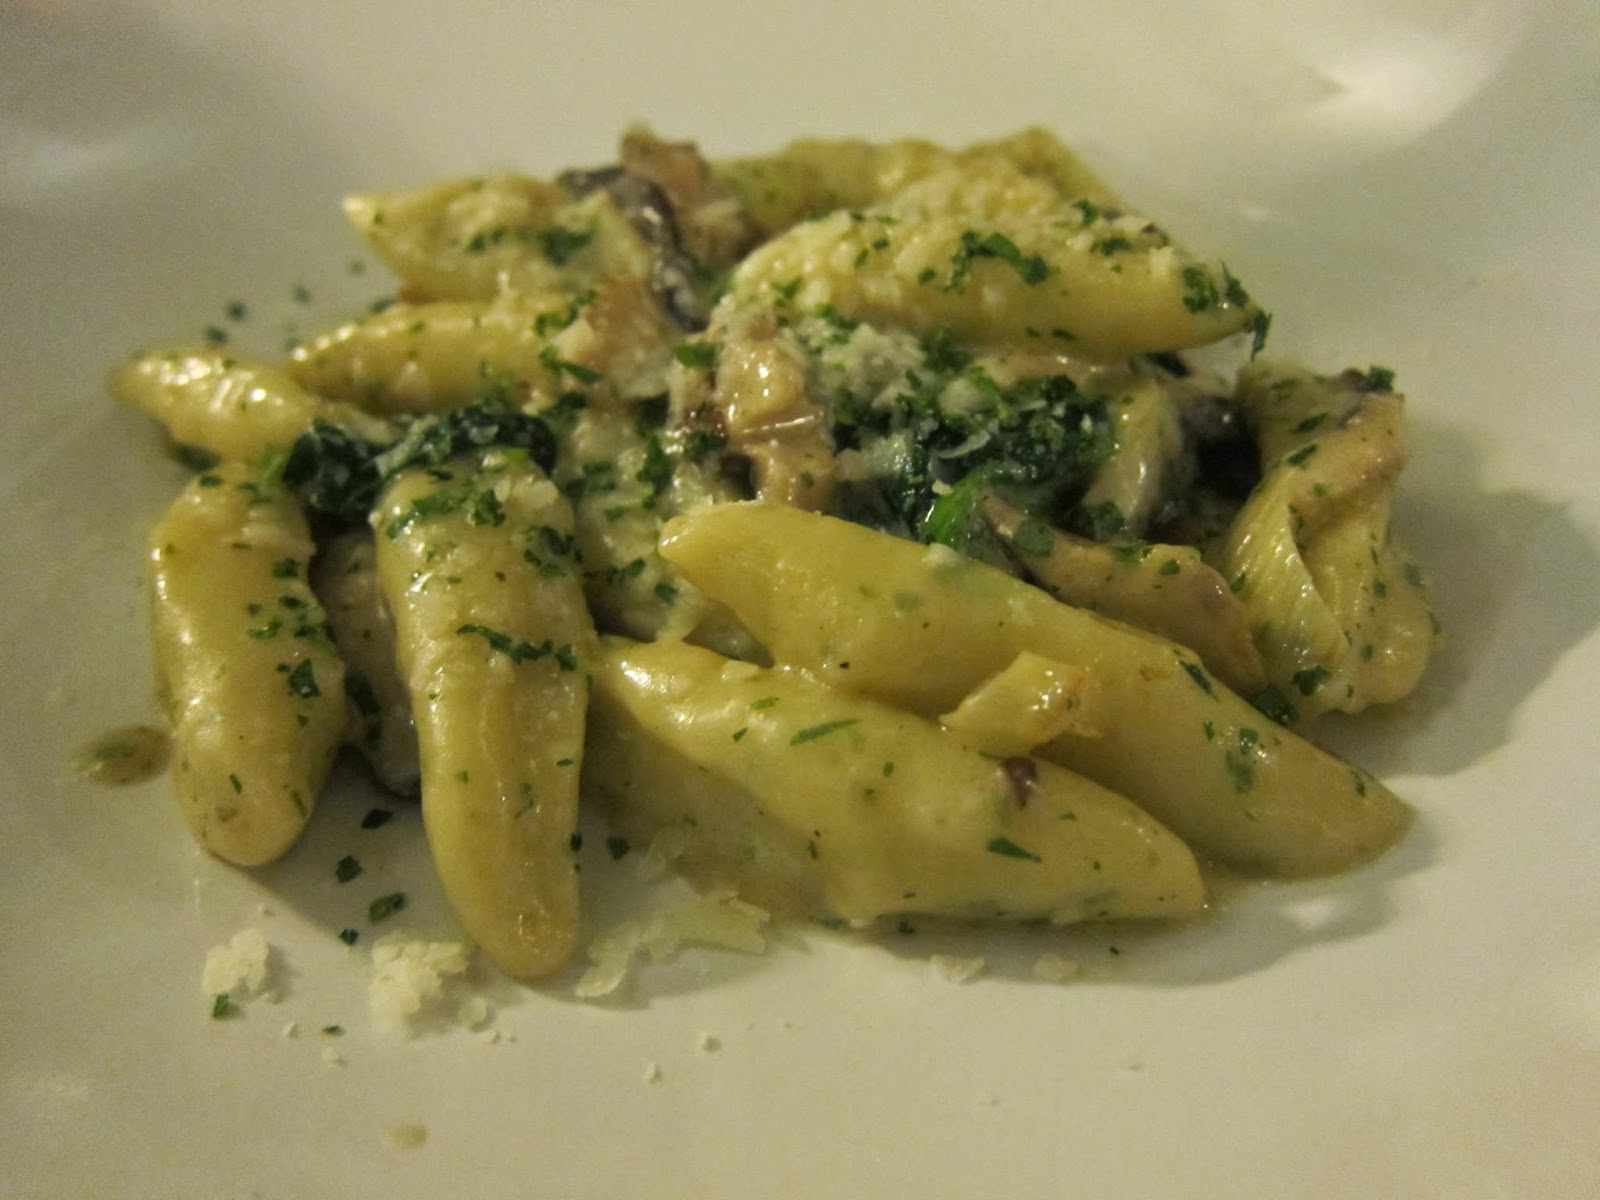 Homemade gnocchi at Kitchen on Common in Belmont, Mass. | The Economical Eater